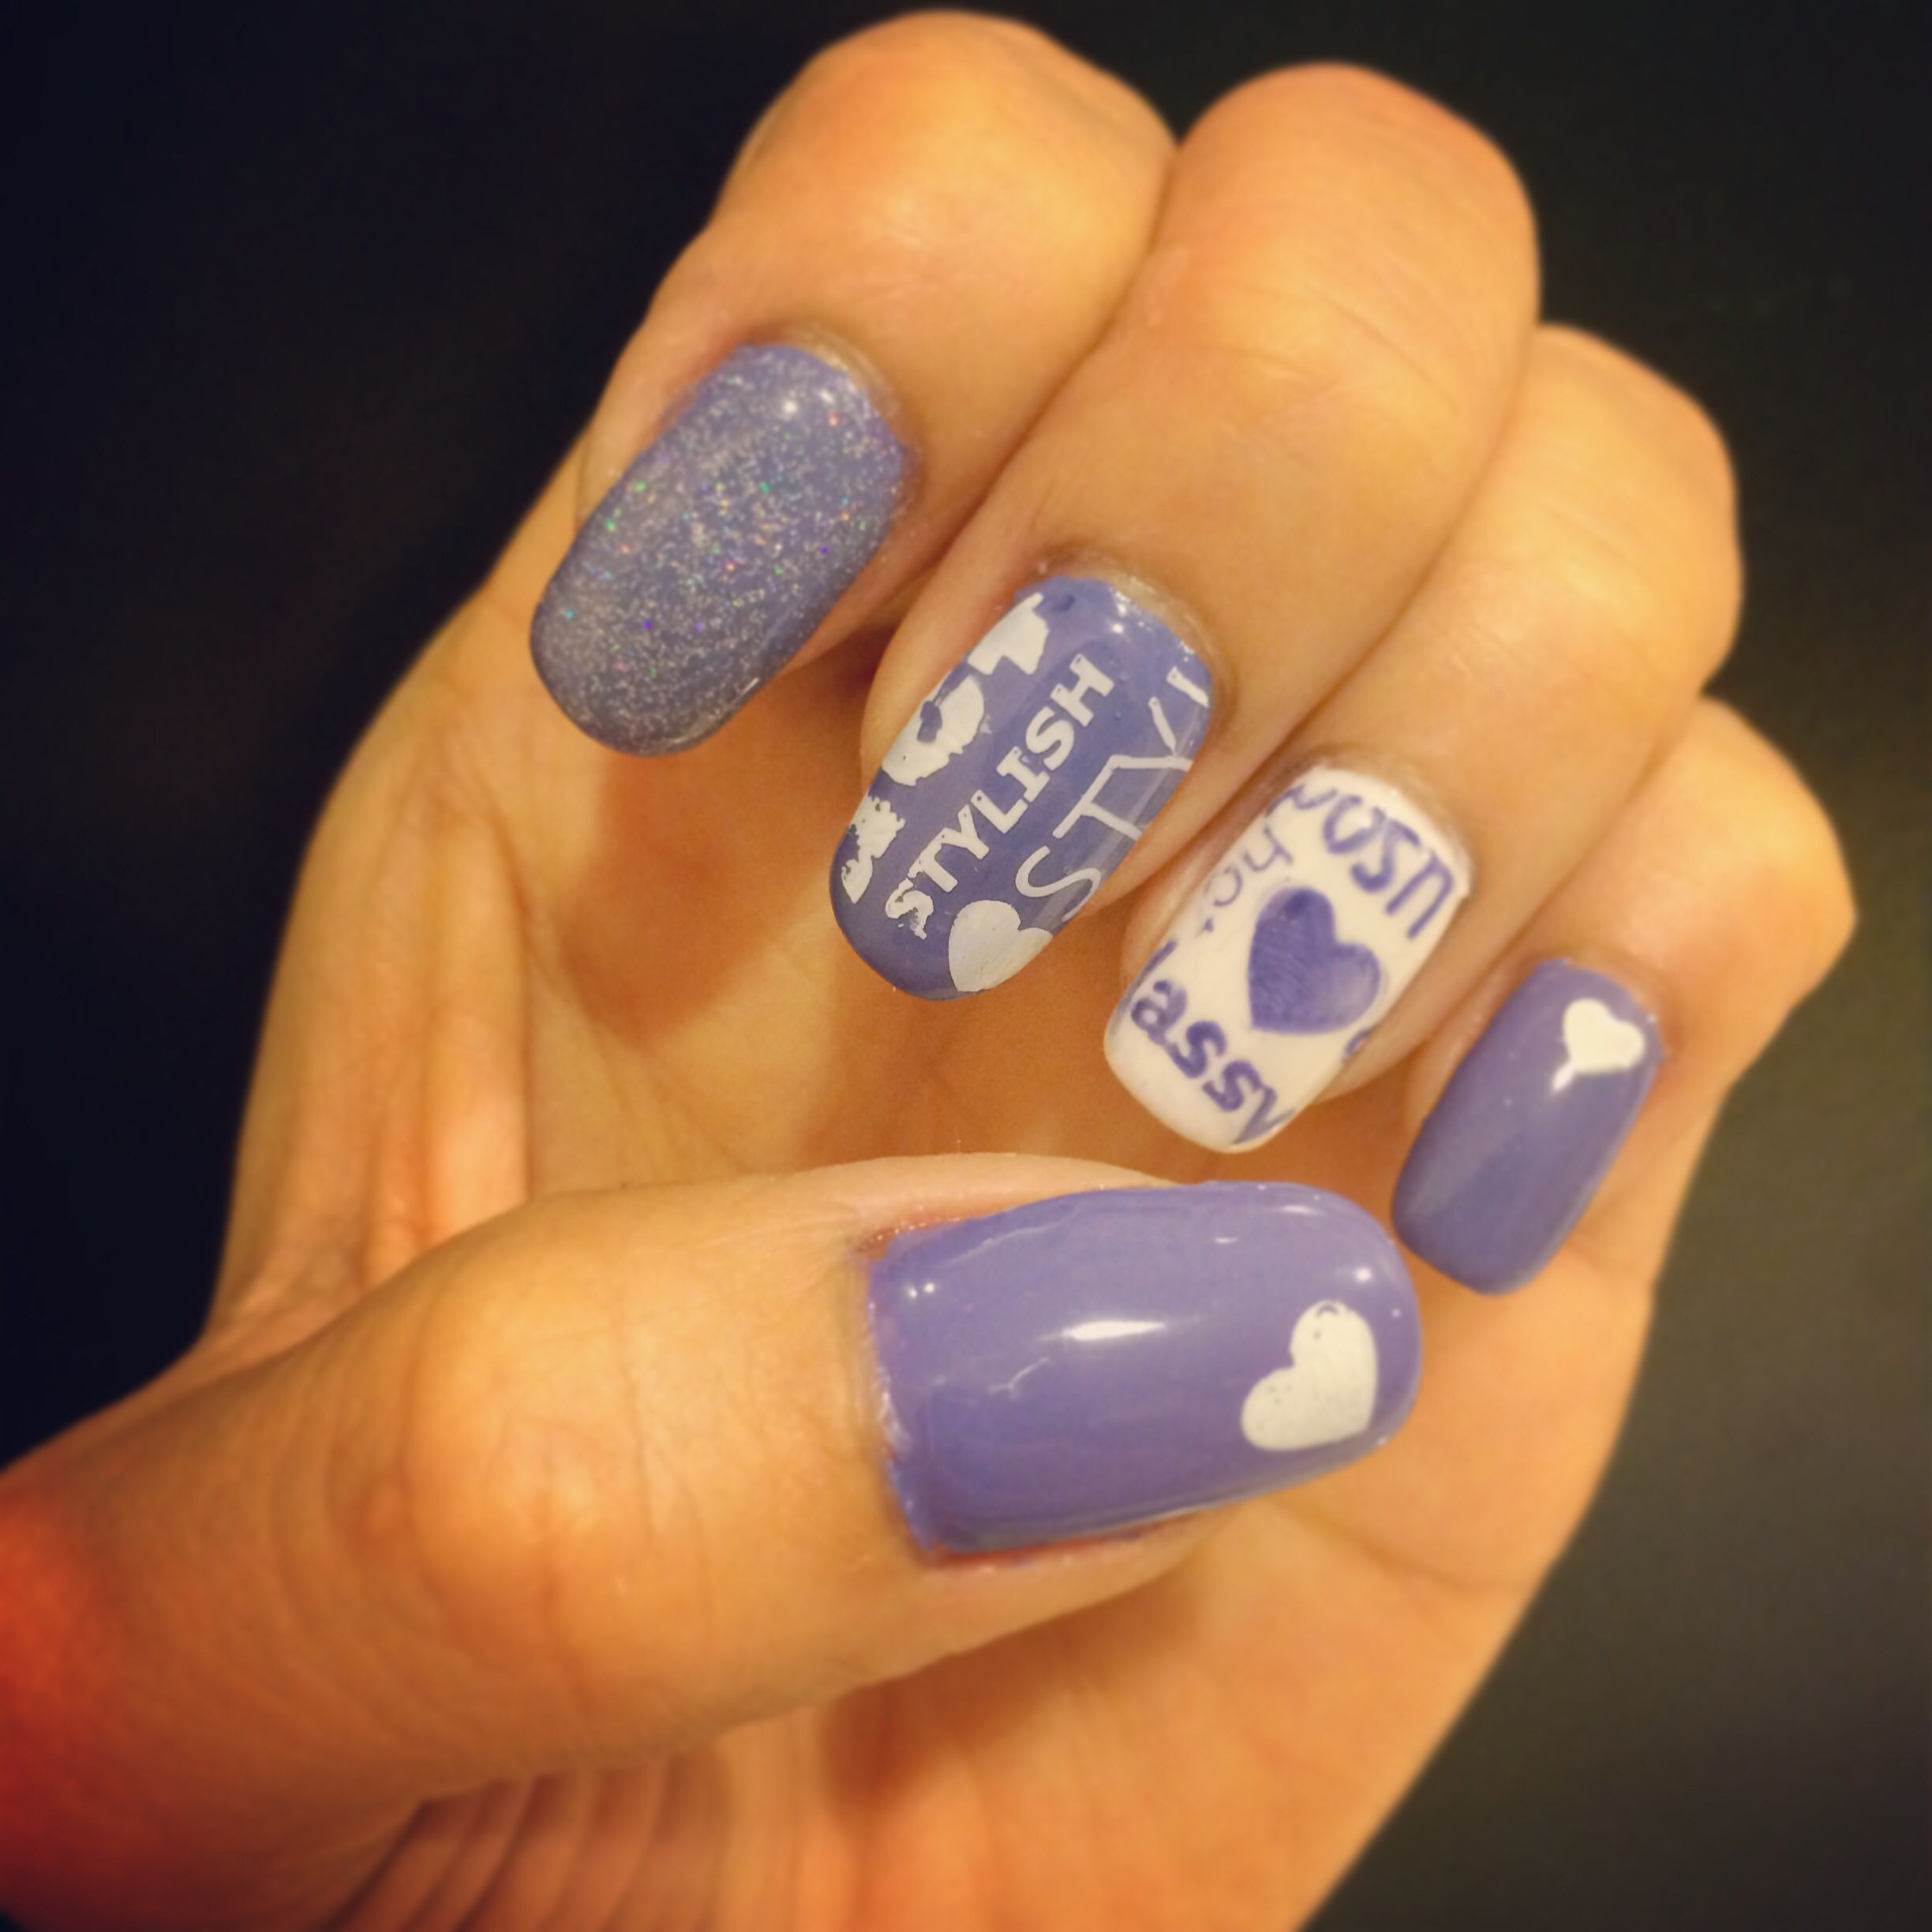 Purple Magazine Nails Using Gelish Polish And Pueen50 Stamping Plate